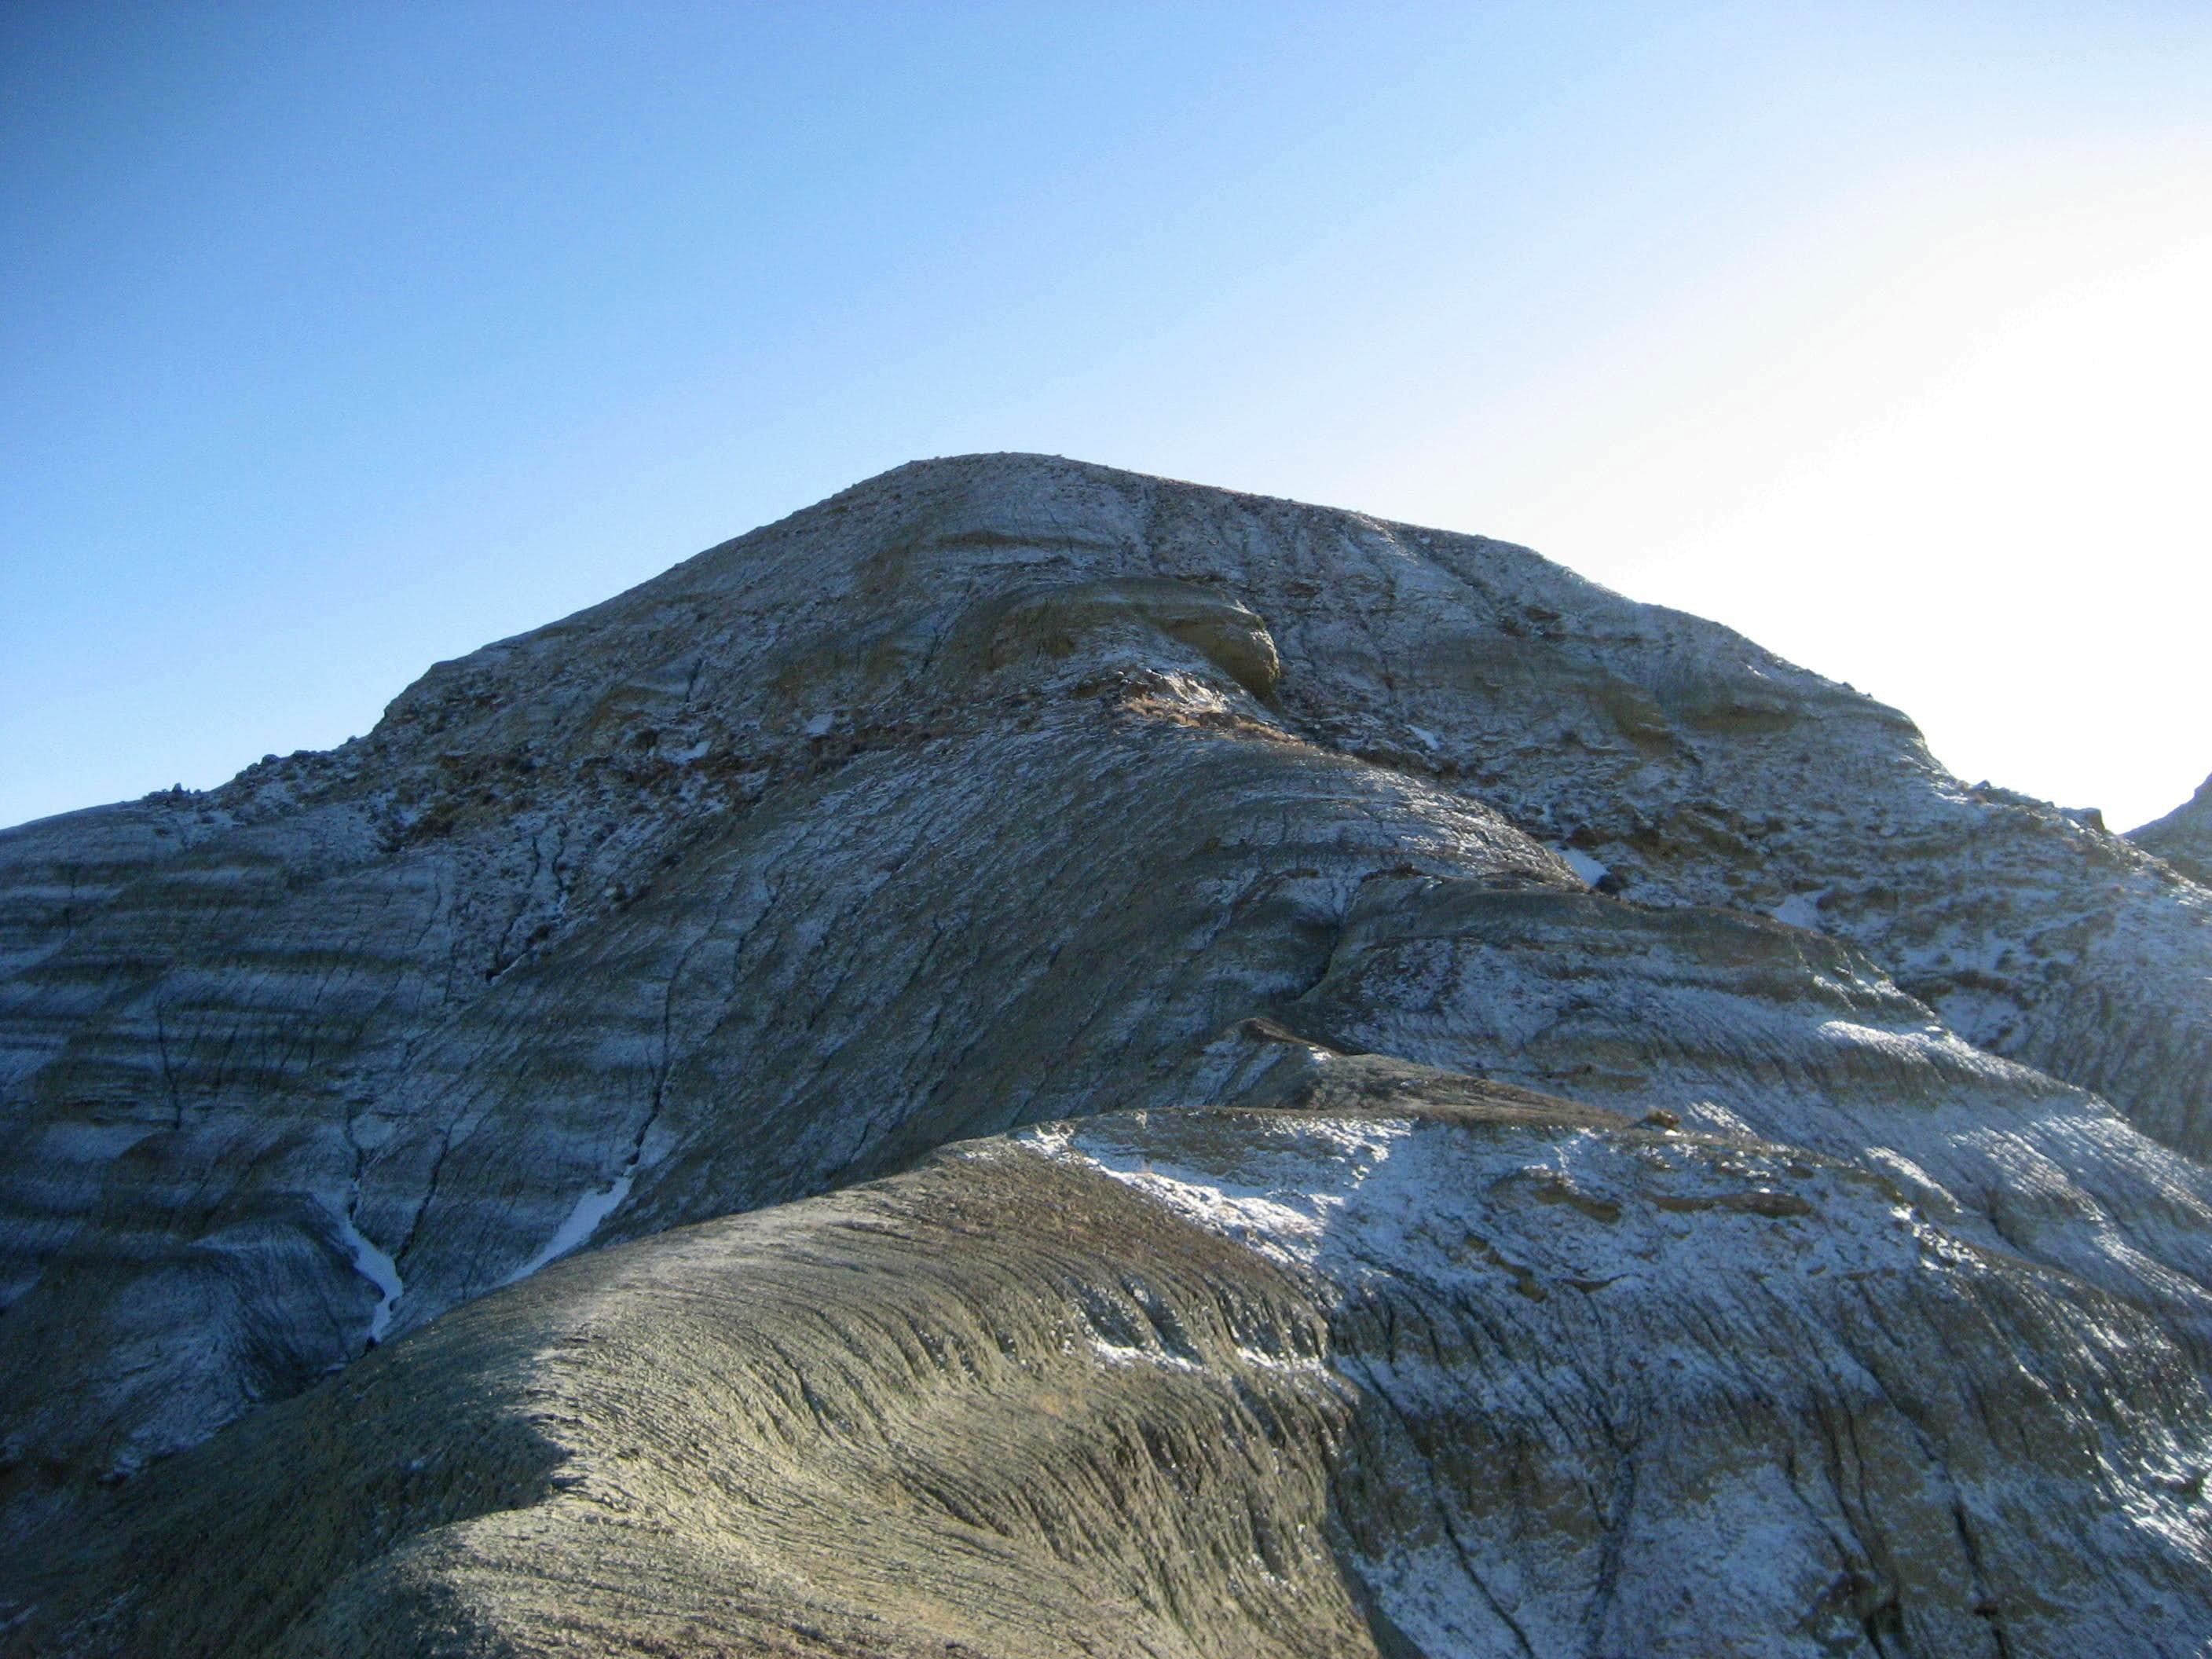 Peak 4990 - Badland Hills North